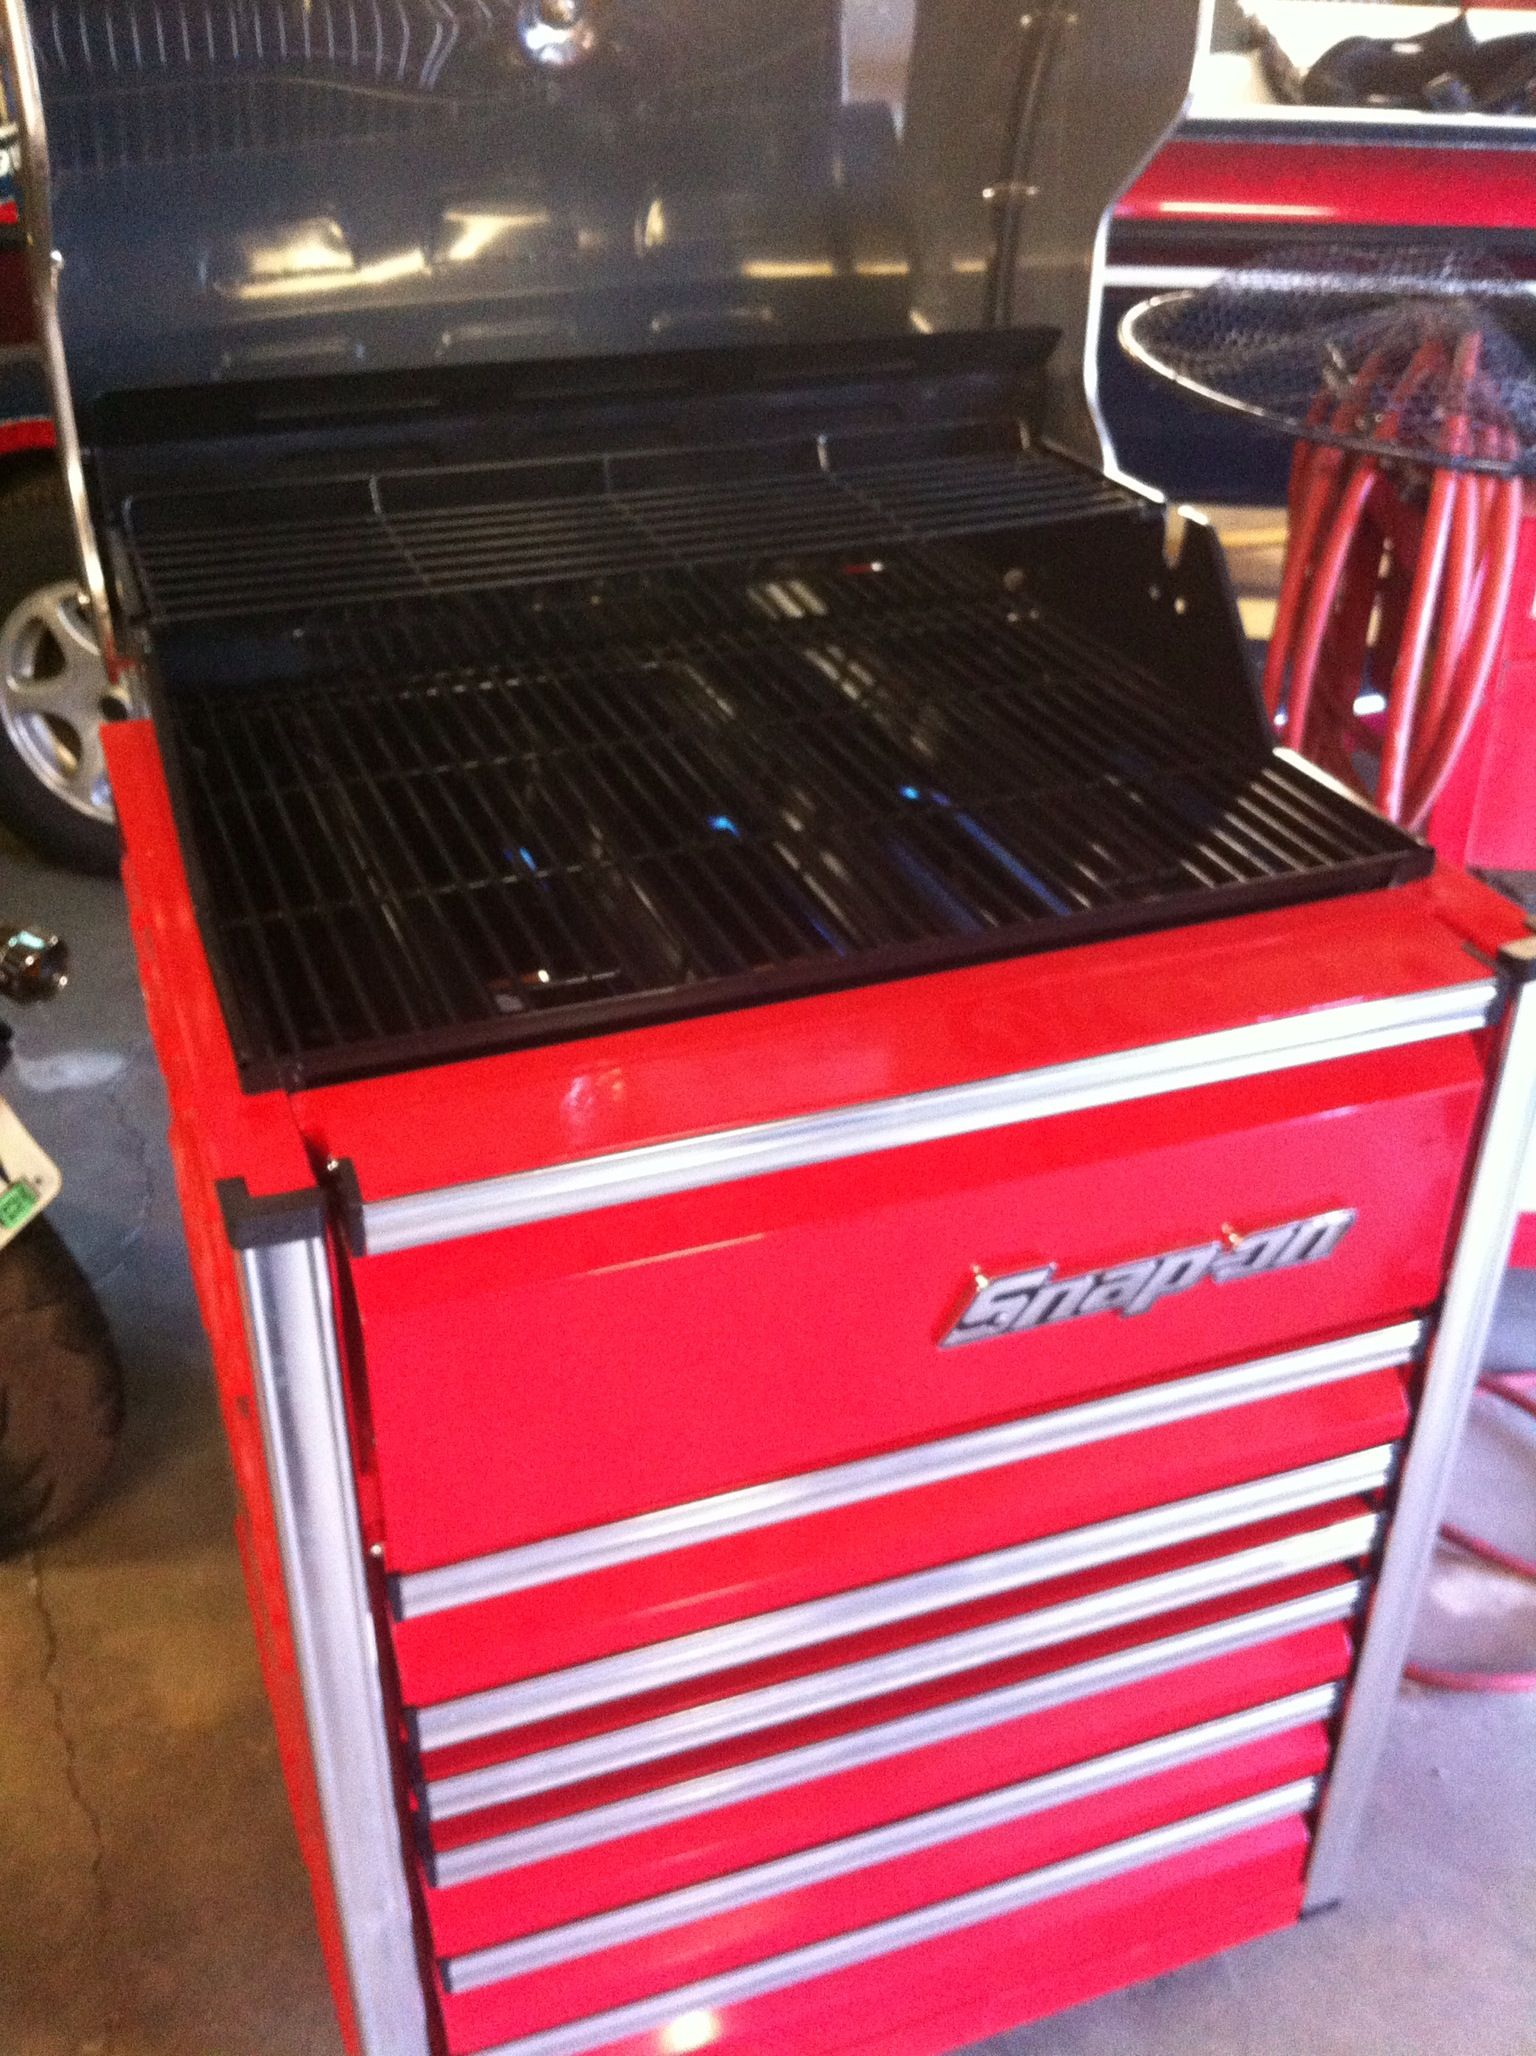 17 best images about snap-on tools on pinterest | chevy, tool box